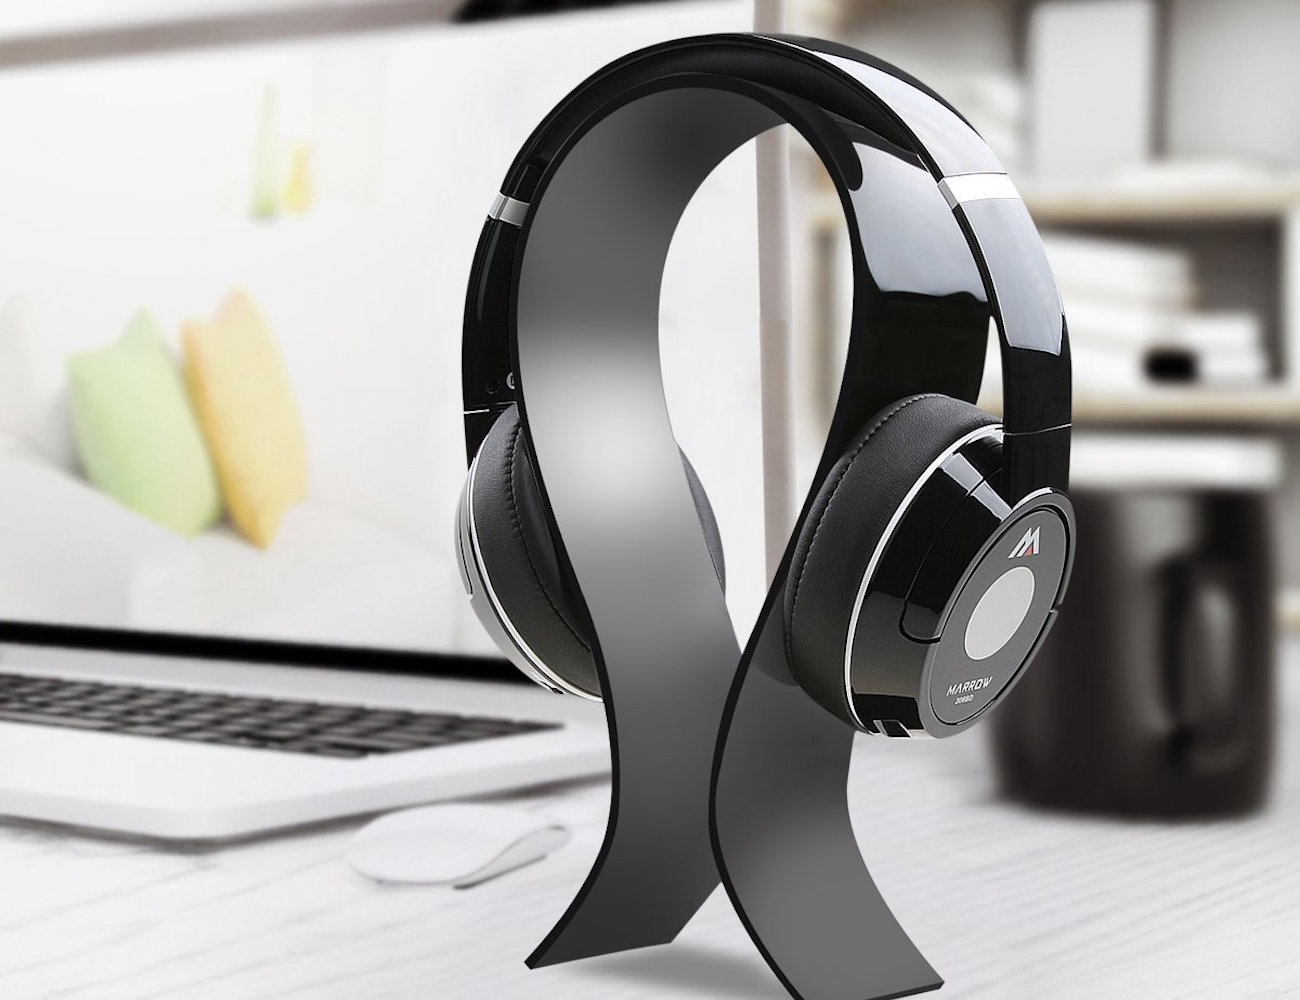 Omega+Acrylic+Headphone+Stand+By+AmoVee